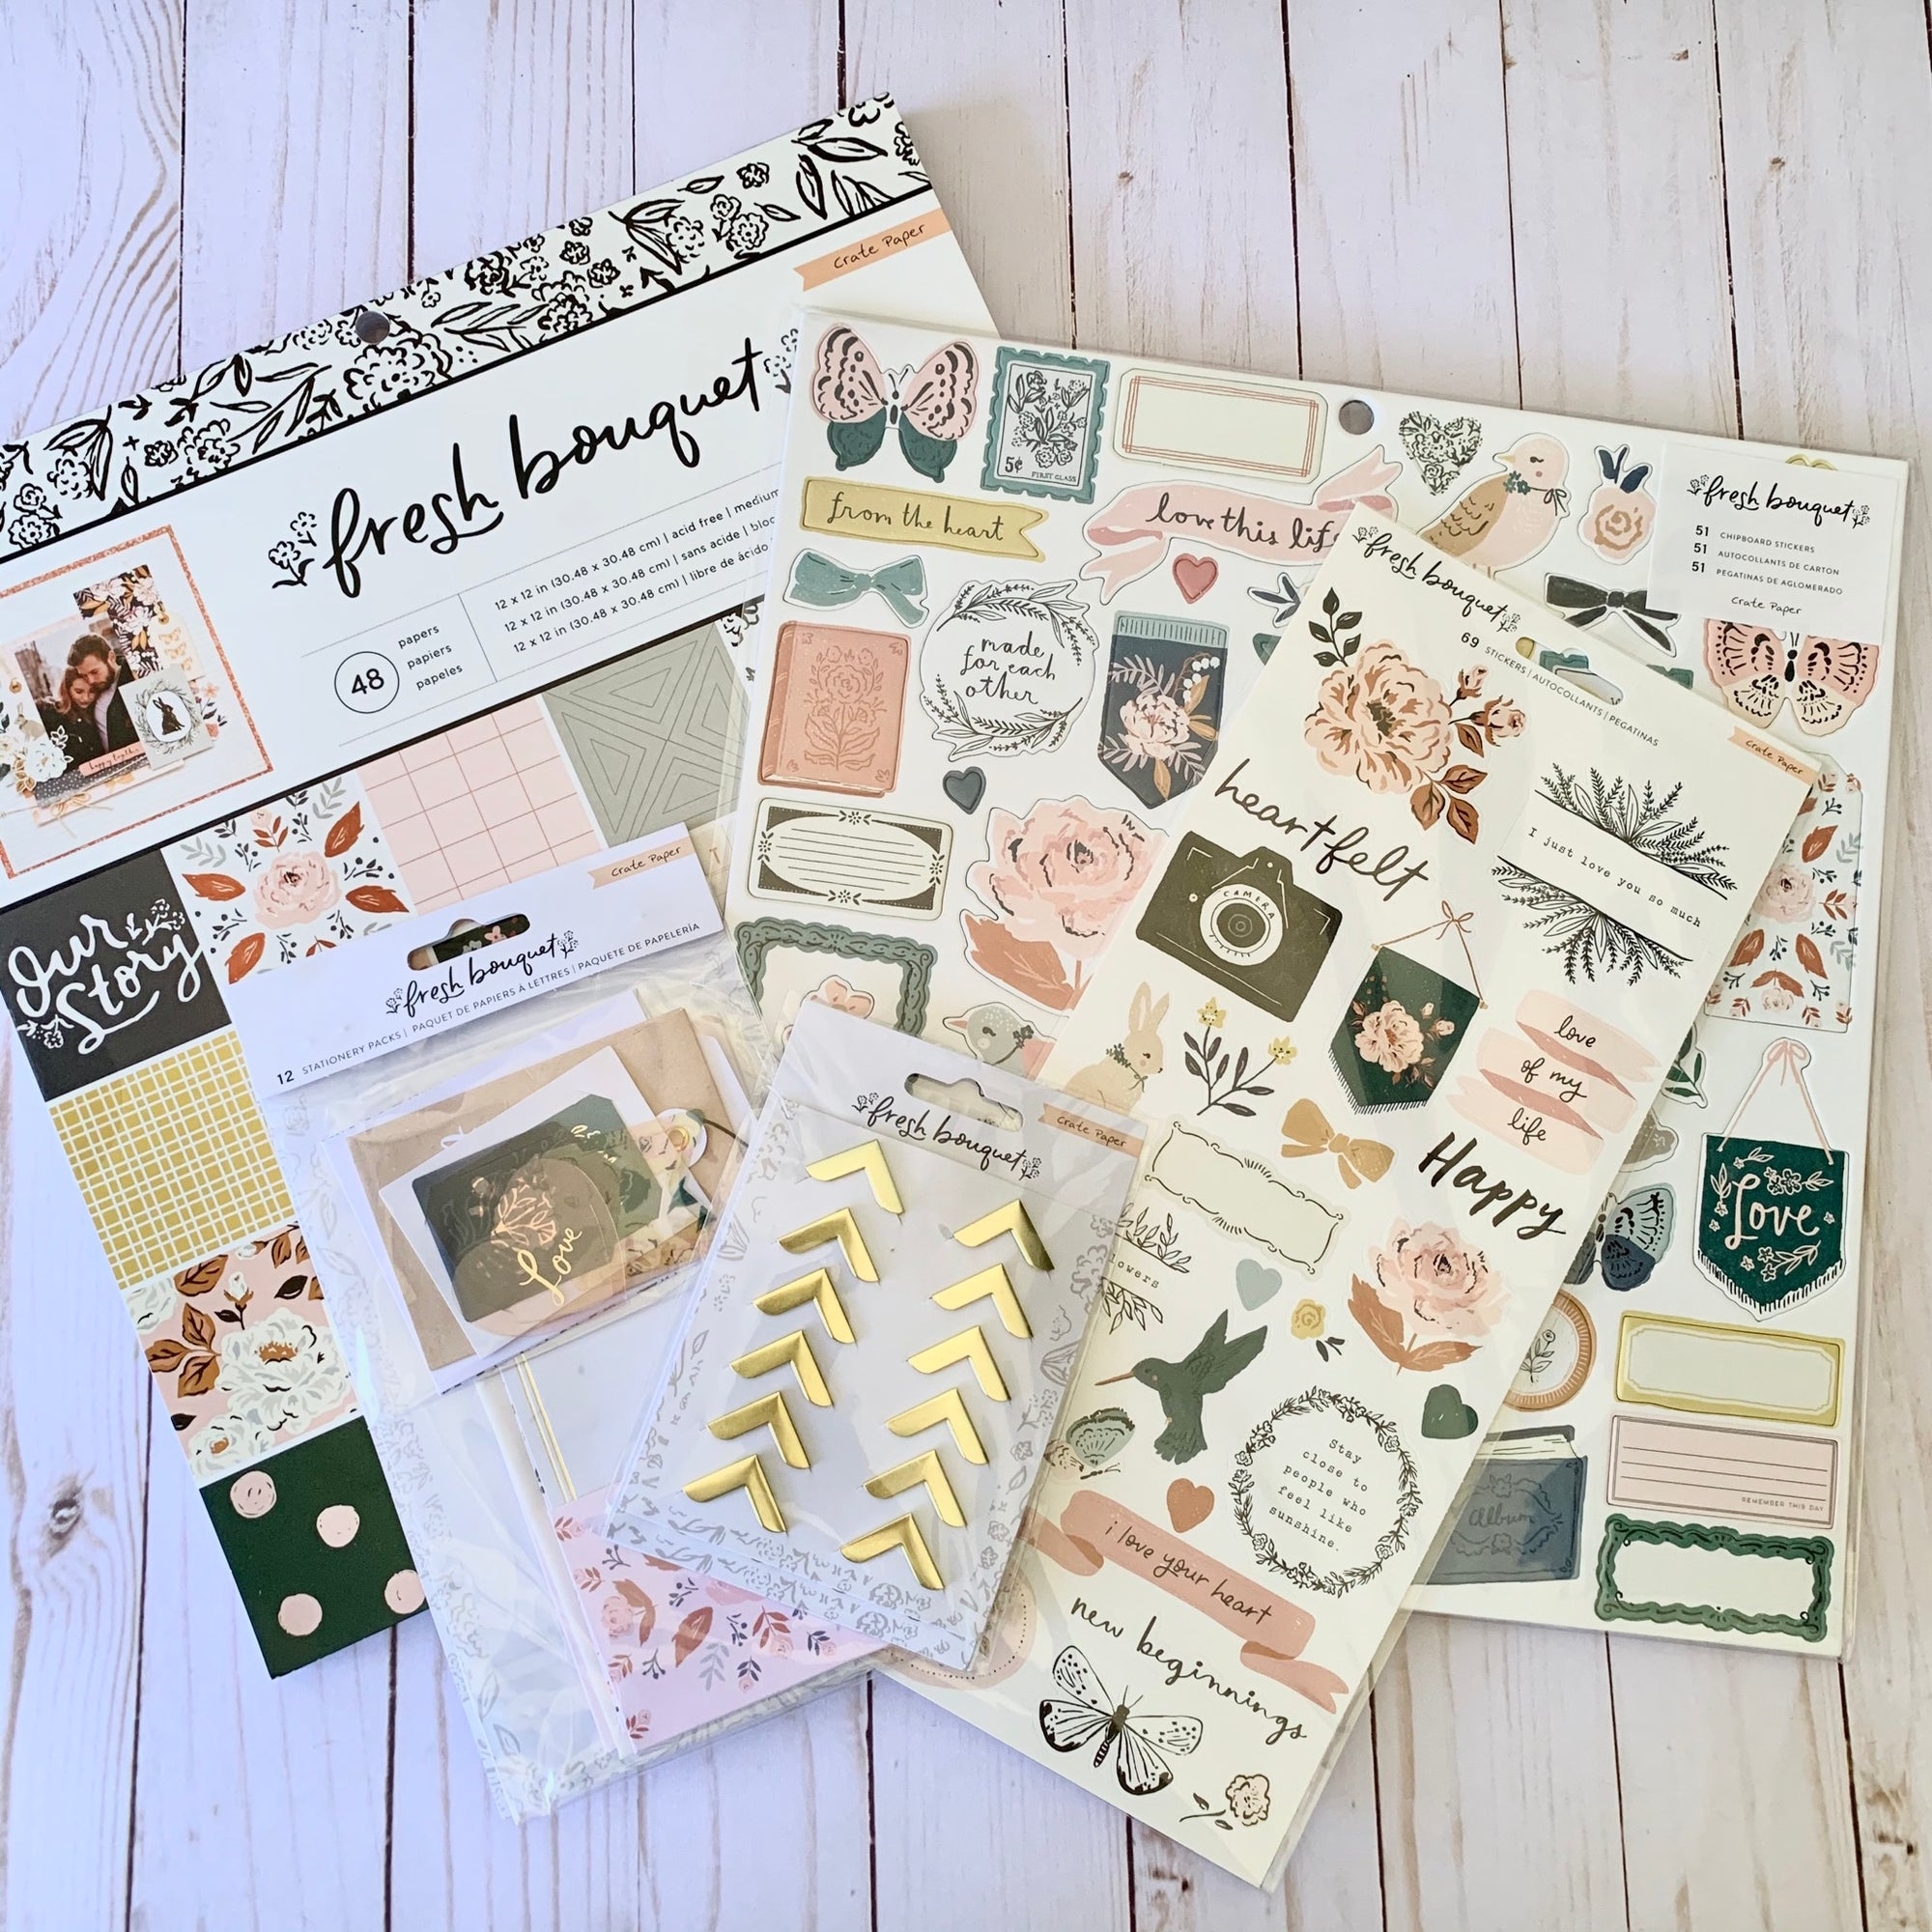 Card Swap - 30 Cards - Crate Paper - Fresh Bouquet - For Scrapbooking